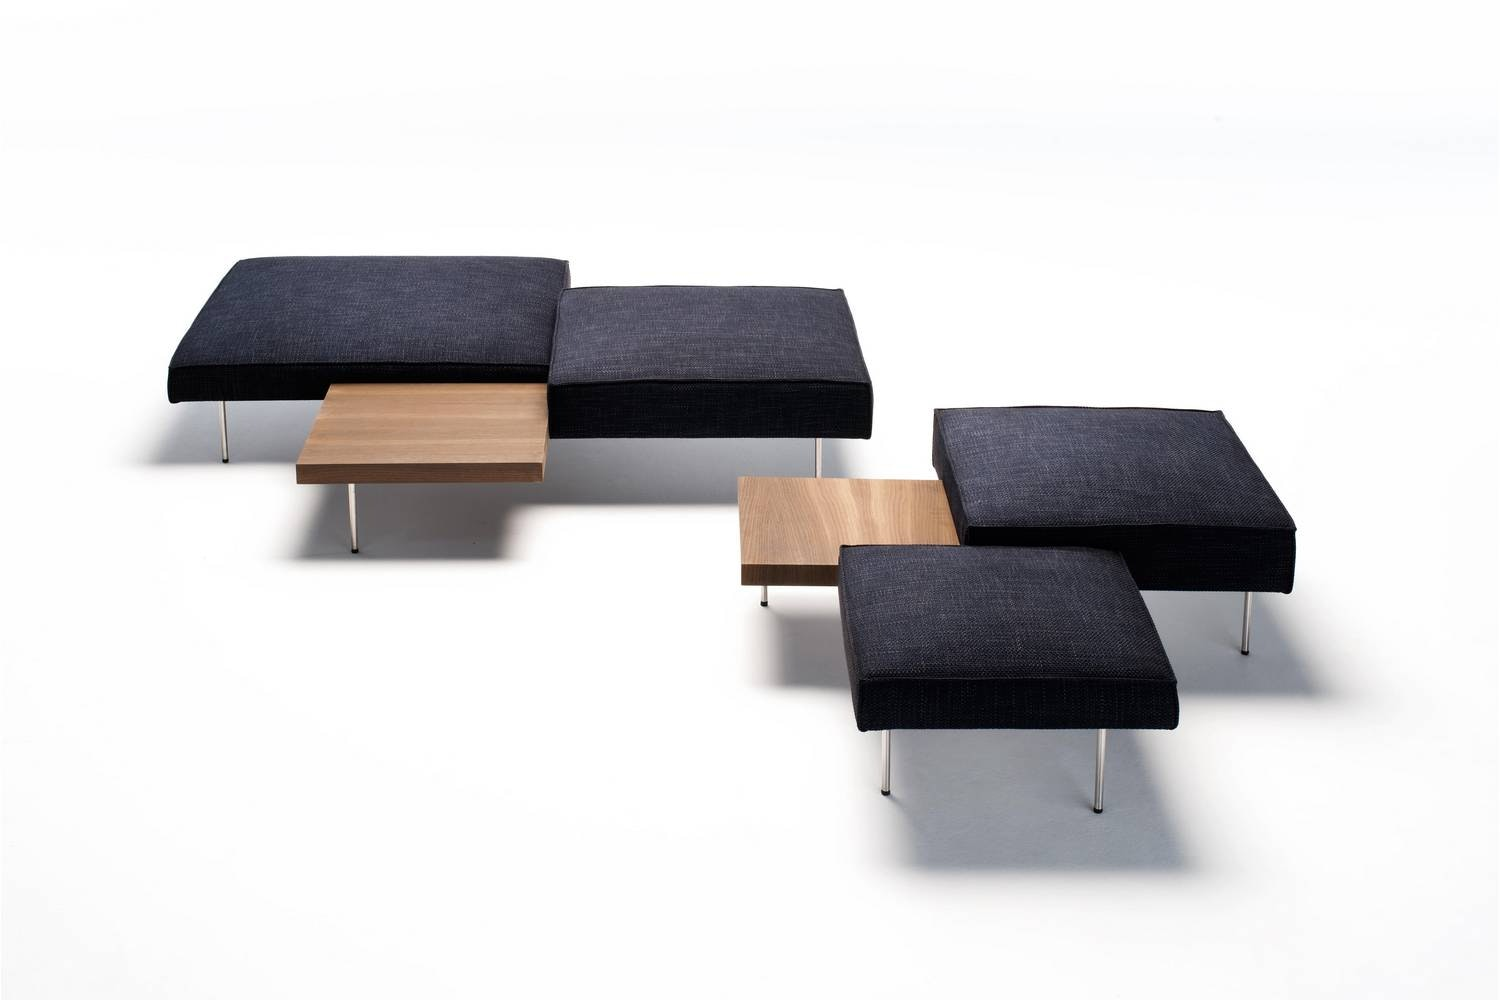 Upland Bench by Massimo Mariani for Living Divani